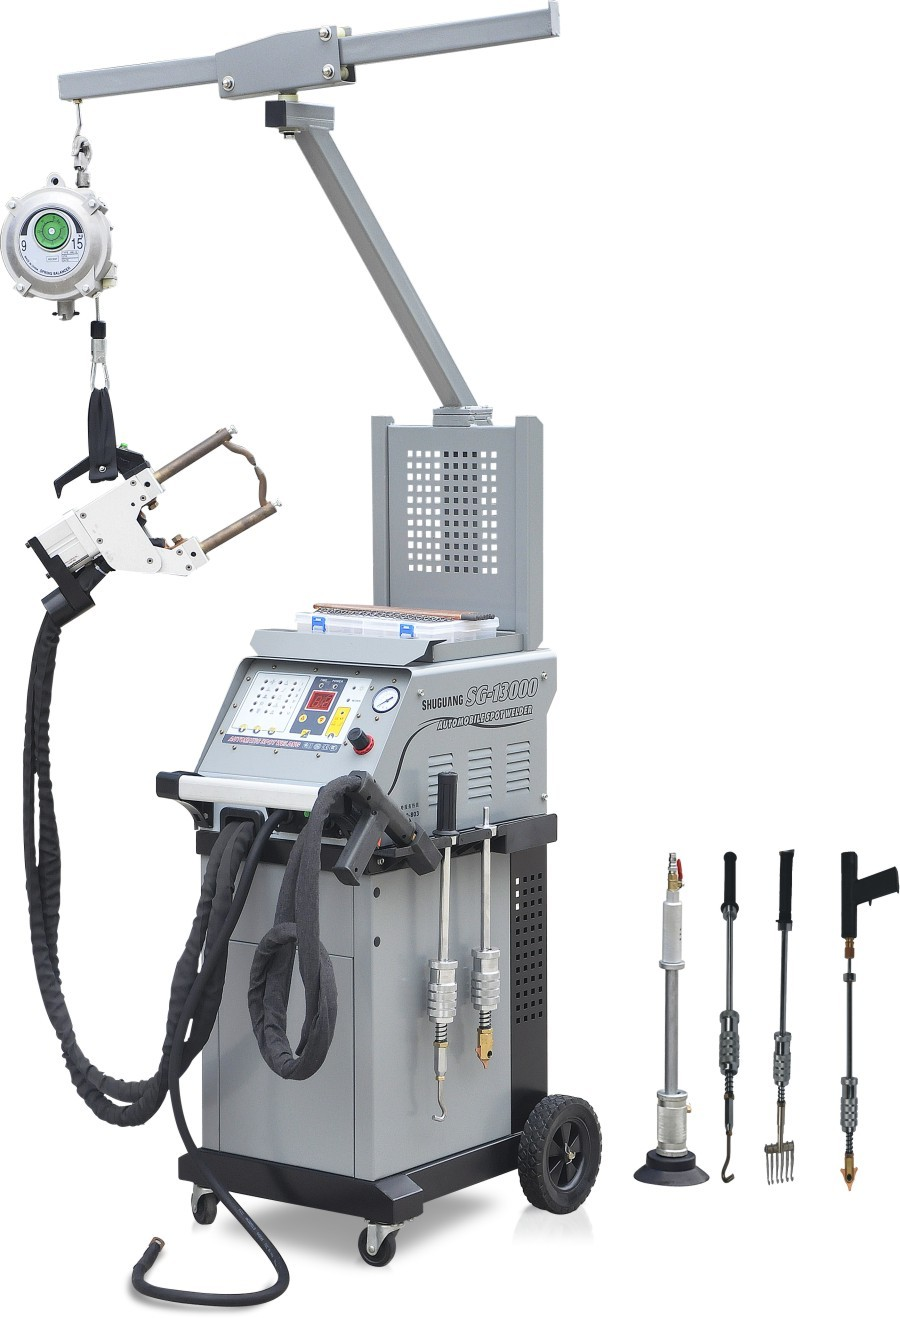 Auto body spot welder,car body repair spot welder